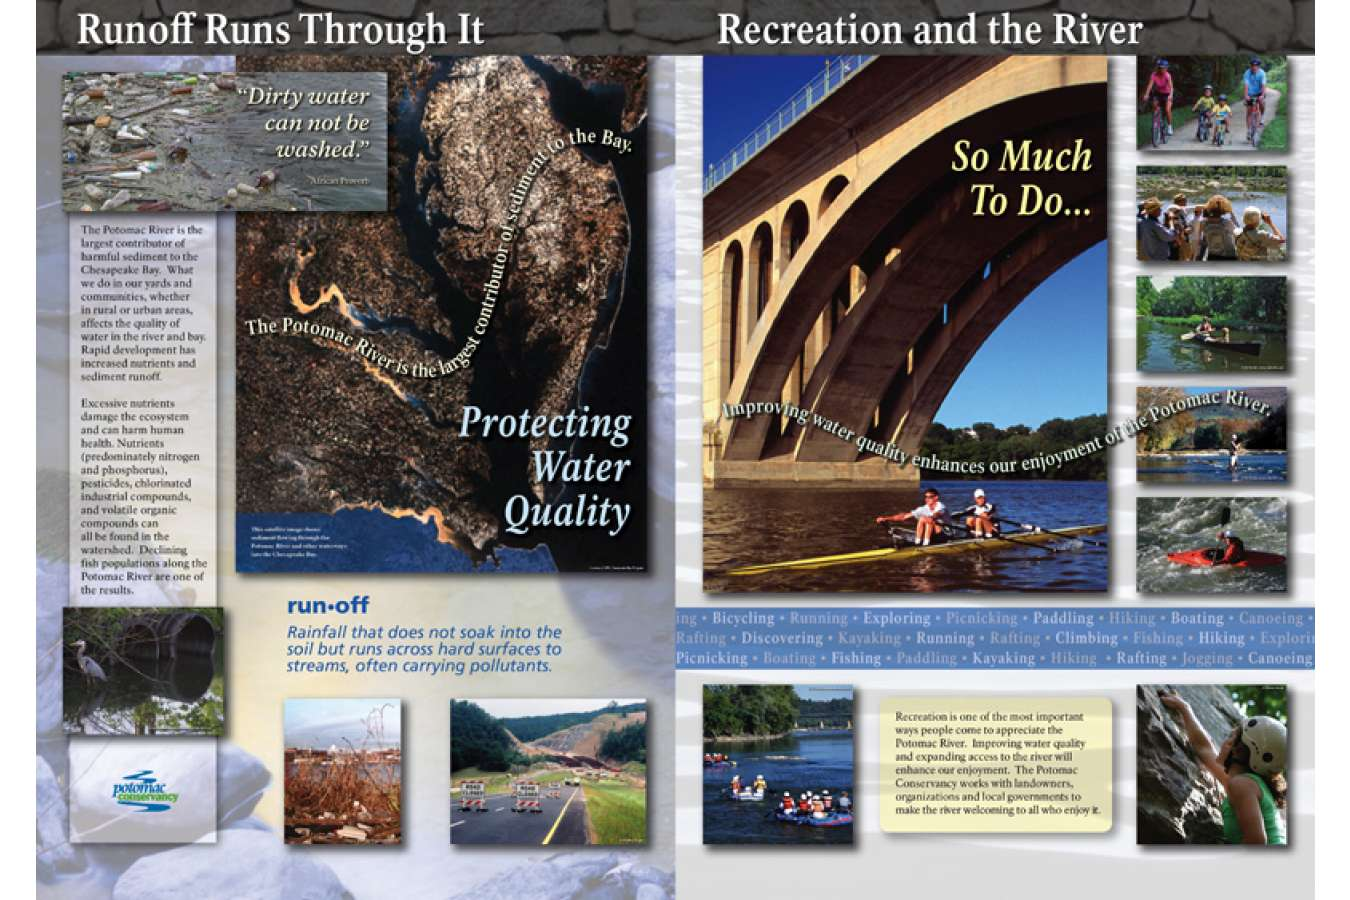 Potcy 4a&b : Runoff Runs Through it & Recreation and the River Displays at the River Center